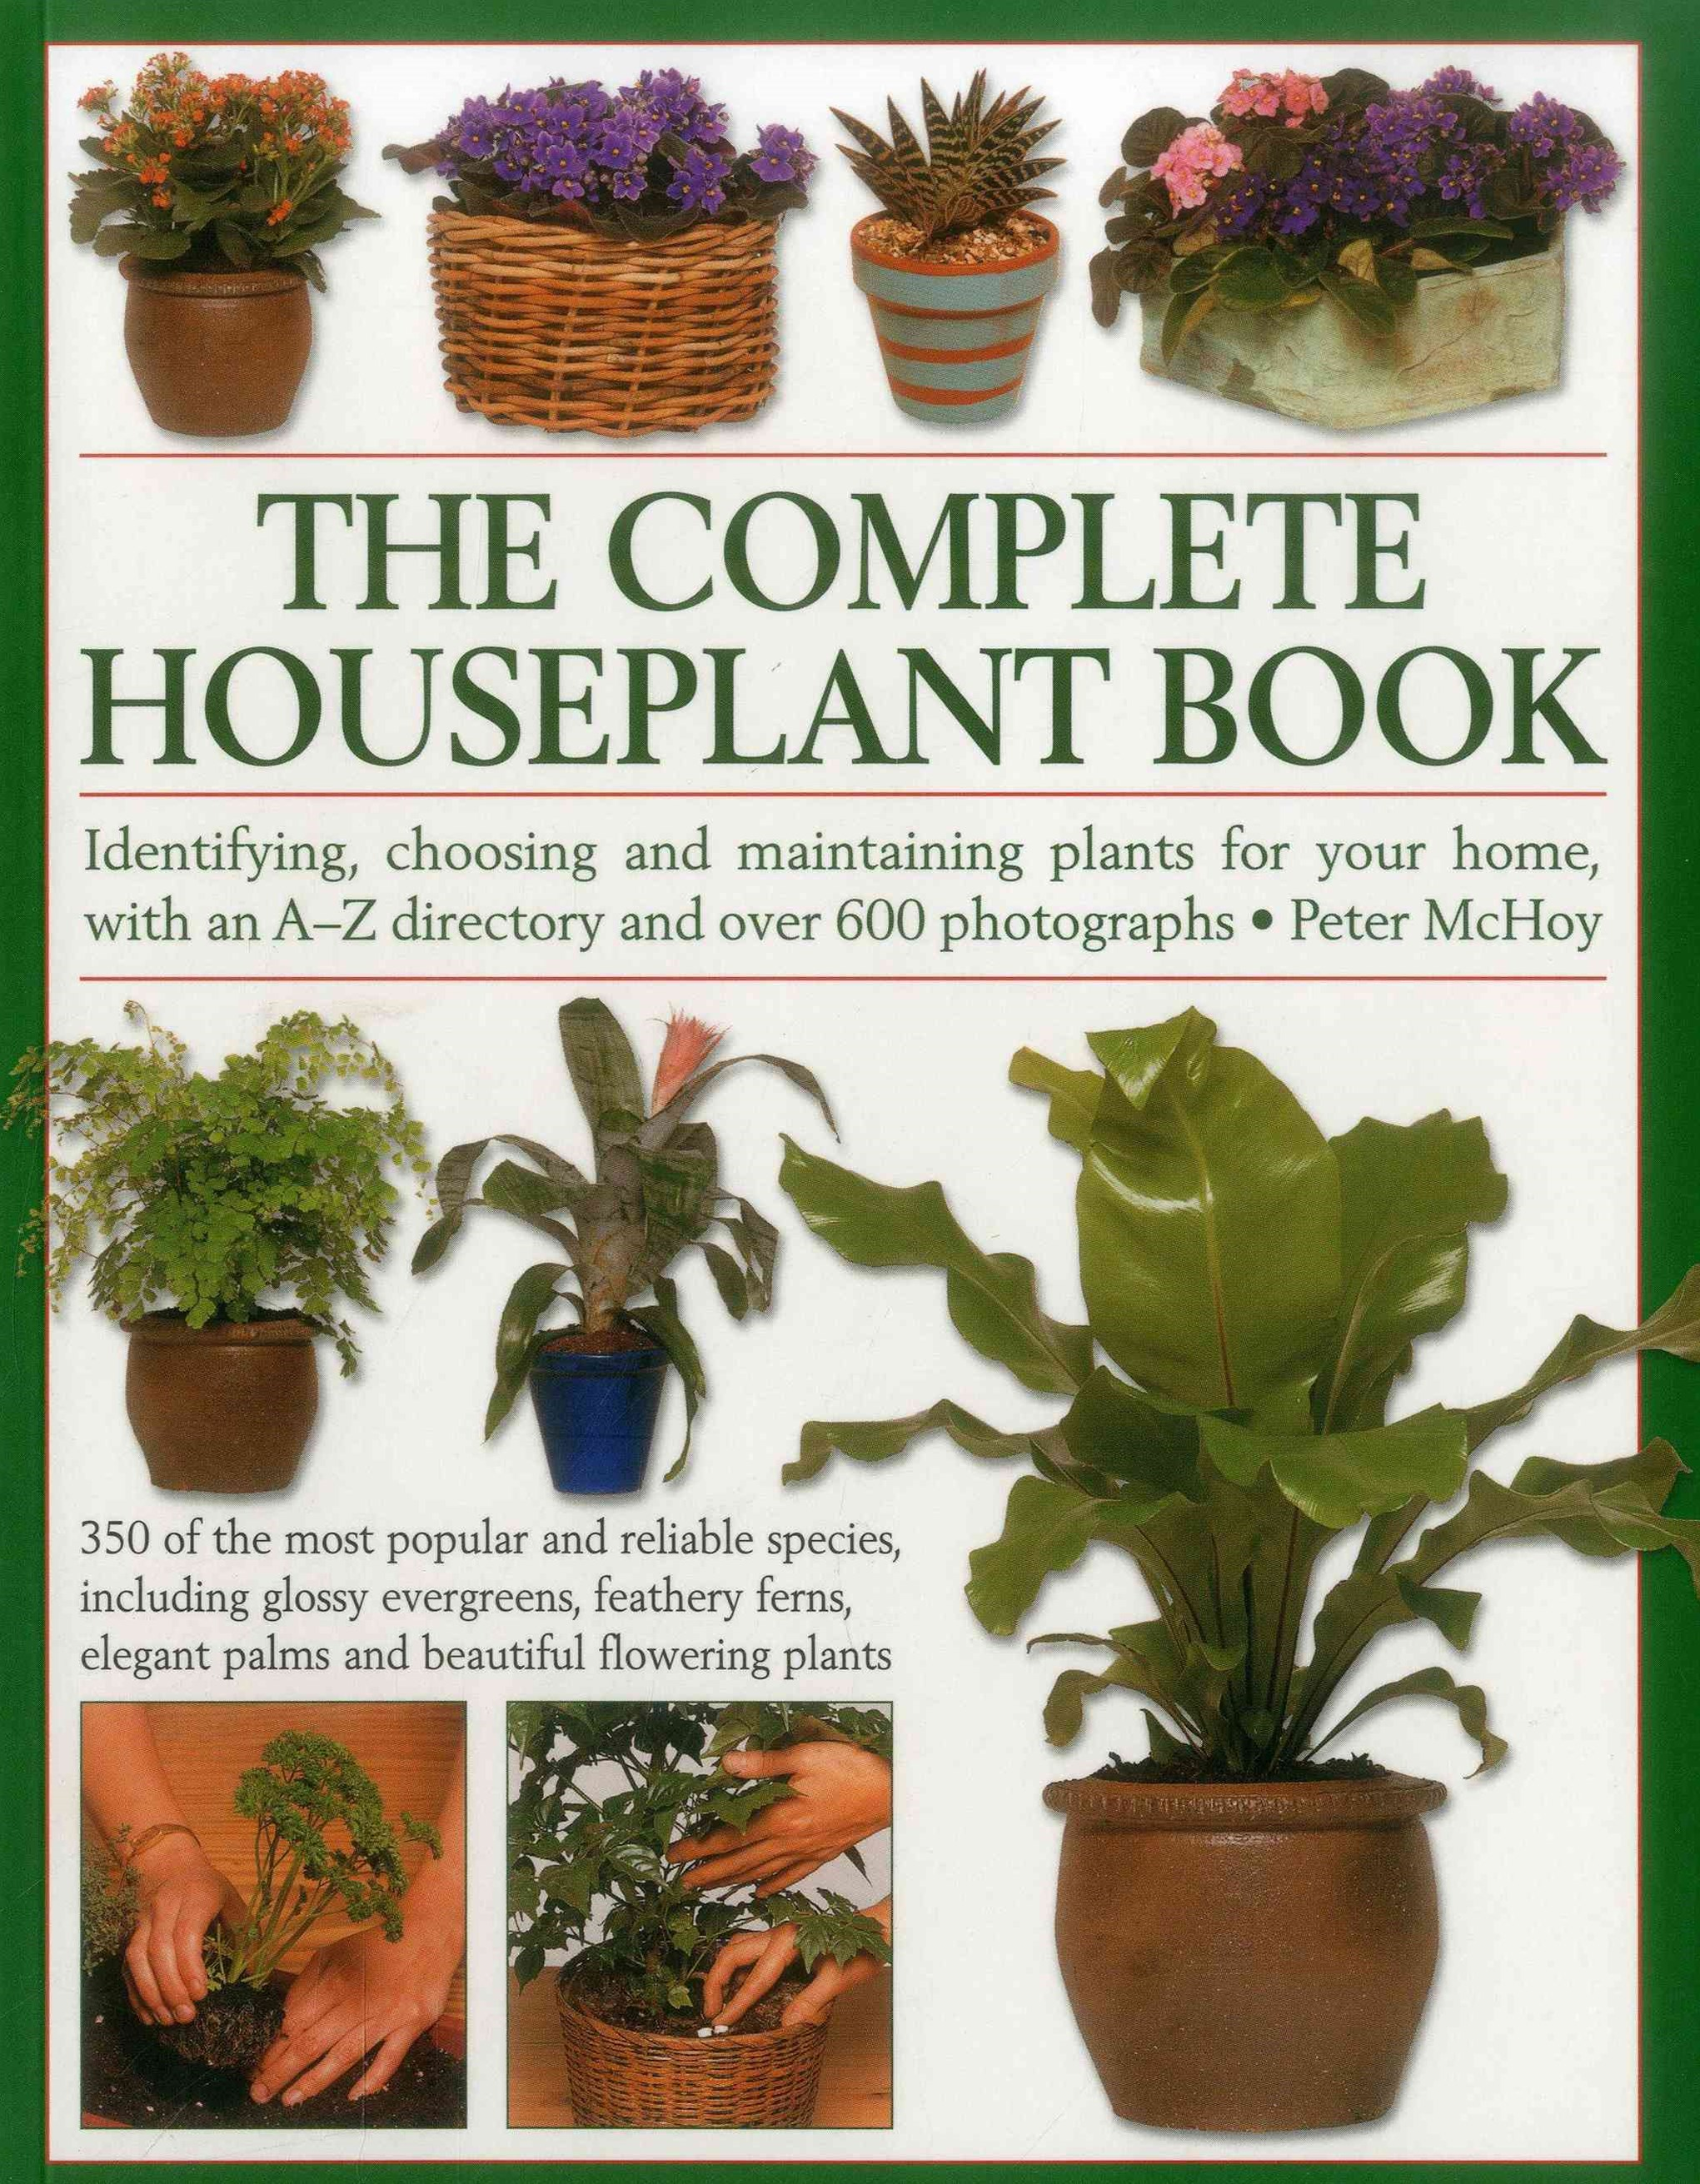 The Complete Houseplant Book